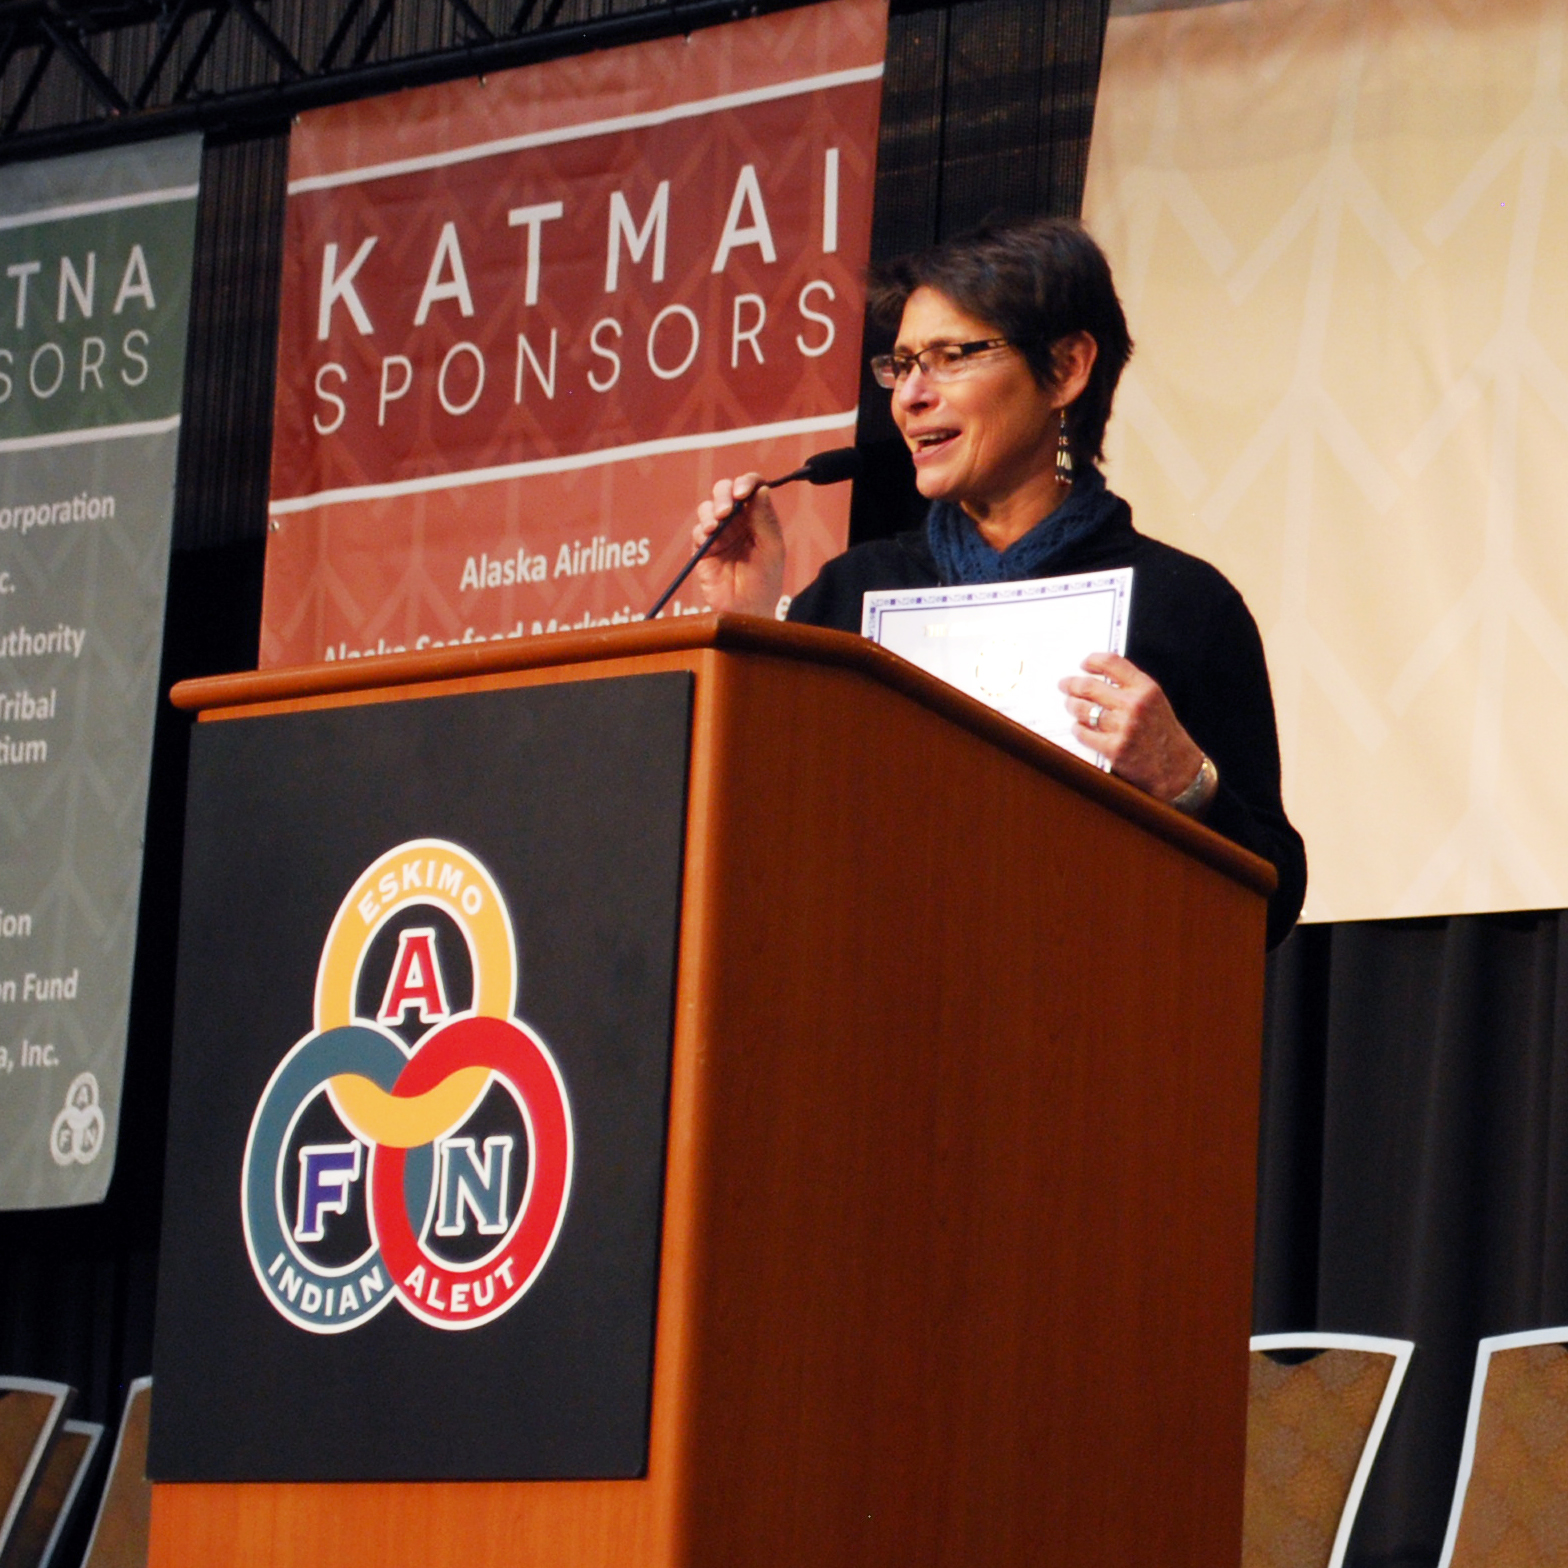 Heather Kendall-Miller received an award from the Alaska Federation of Natives in 2014. Photo by Angela Gonzalez